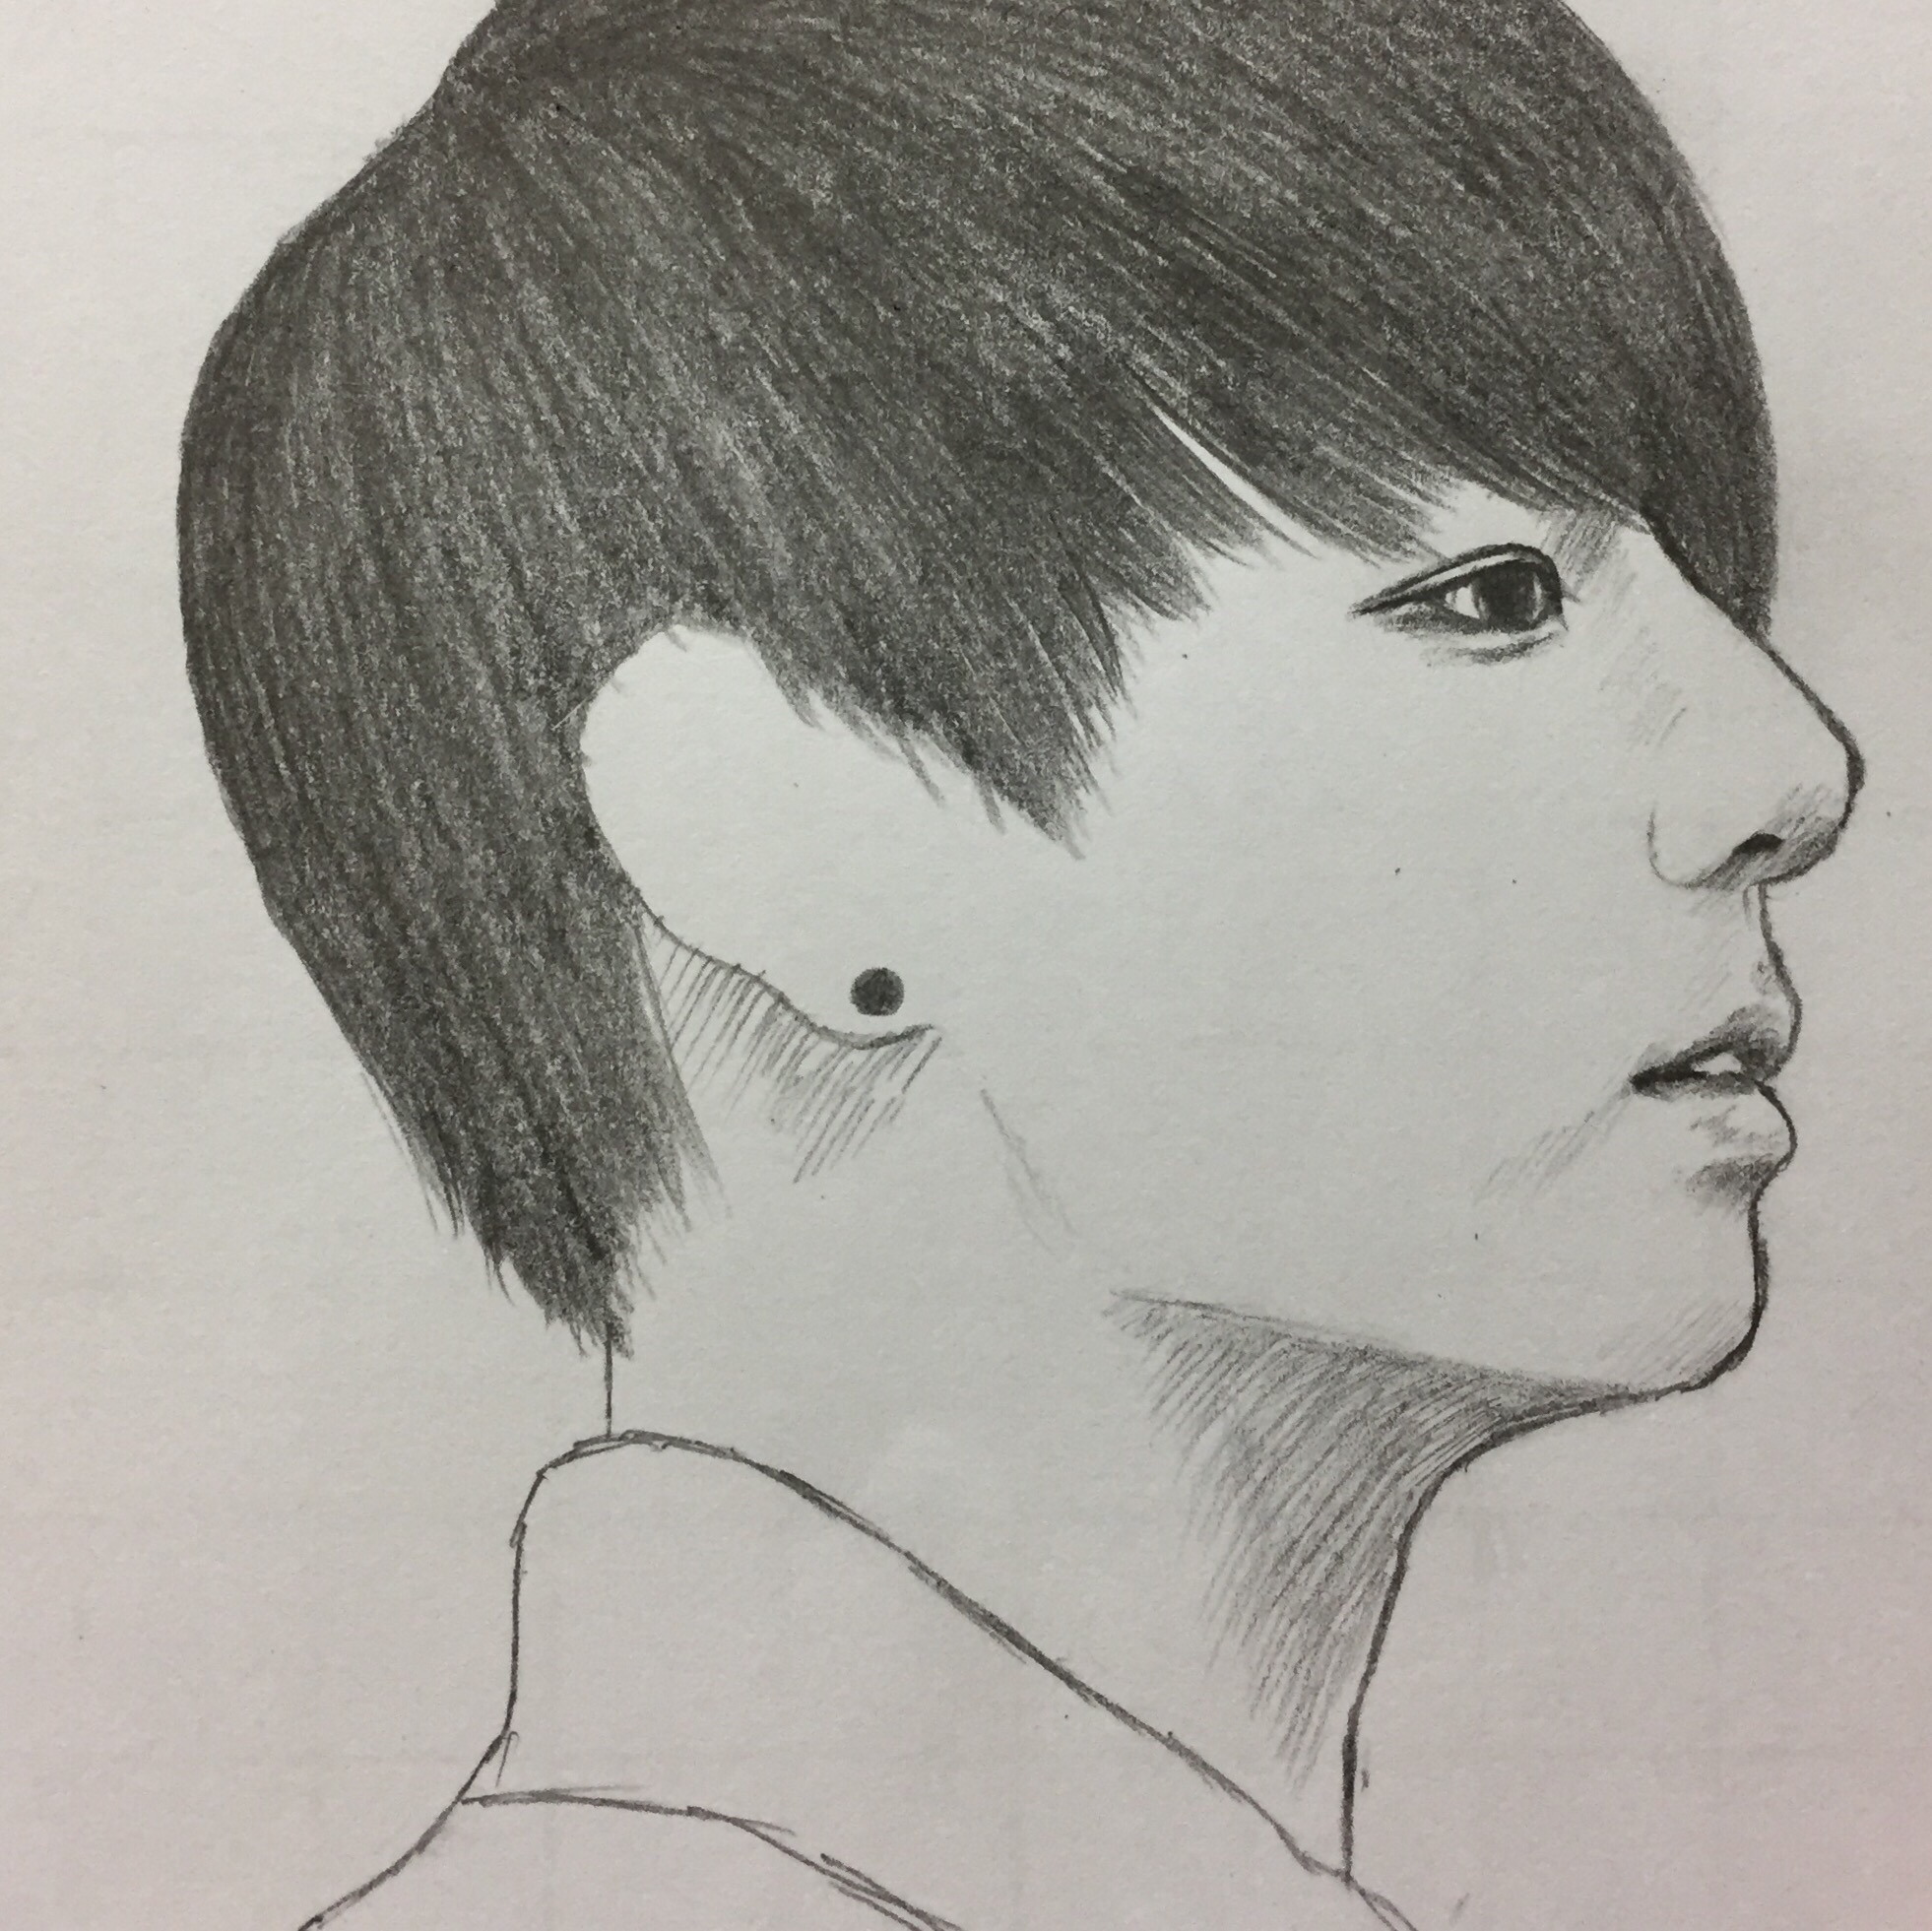 Bts Jungkook Drawing Easy Clipartxtras Viewinvite Co